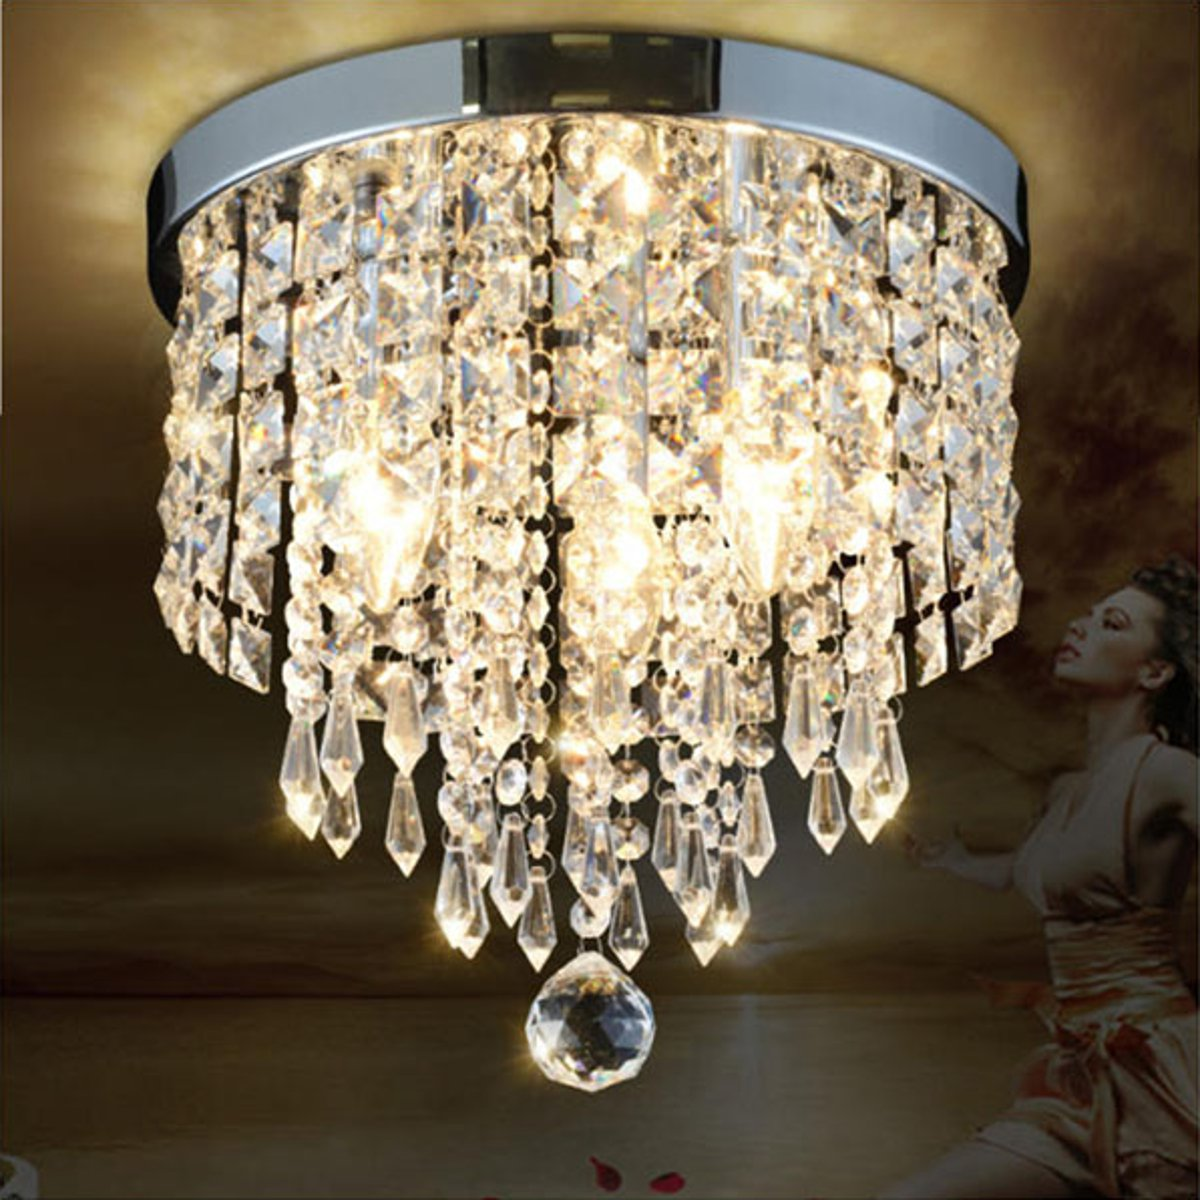 30*28cm LED Crystal Ceiling Lights Lamp Surface Mounted Ceiling Lamp Indoor Lighting Fixture Bedroom Dining Room Decoration|Ceiling Lights| |  - title=